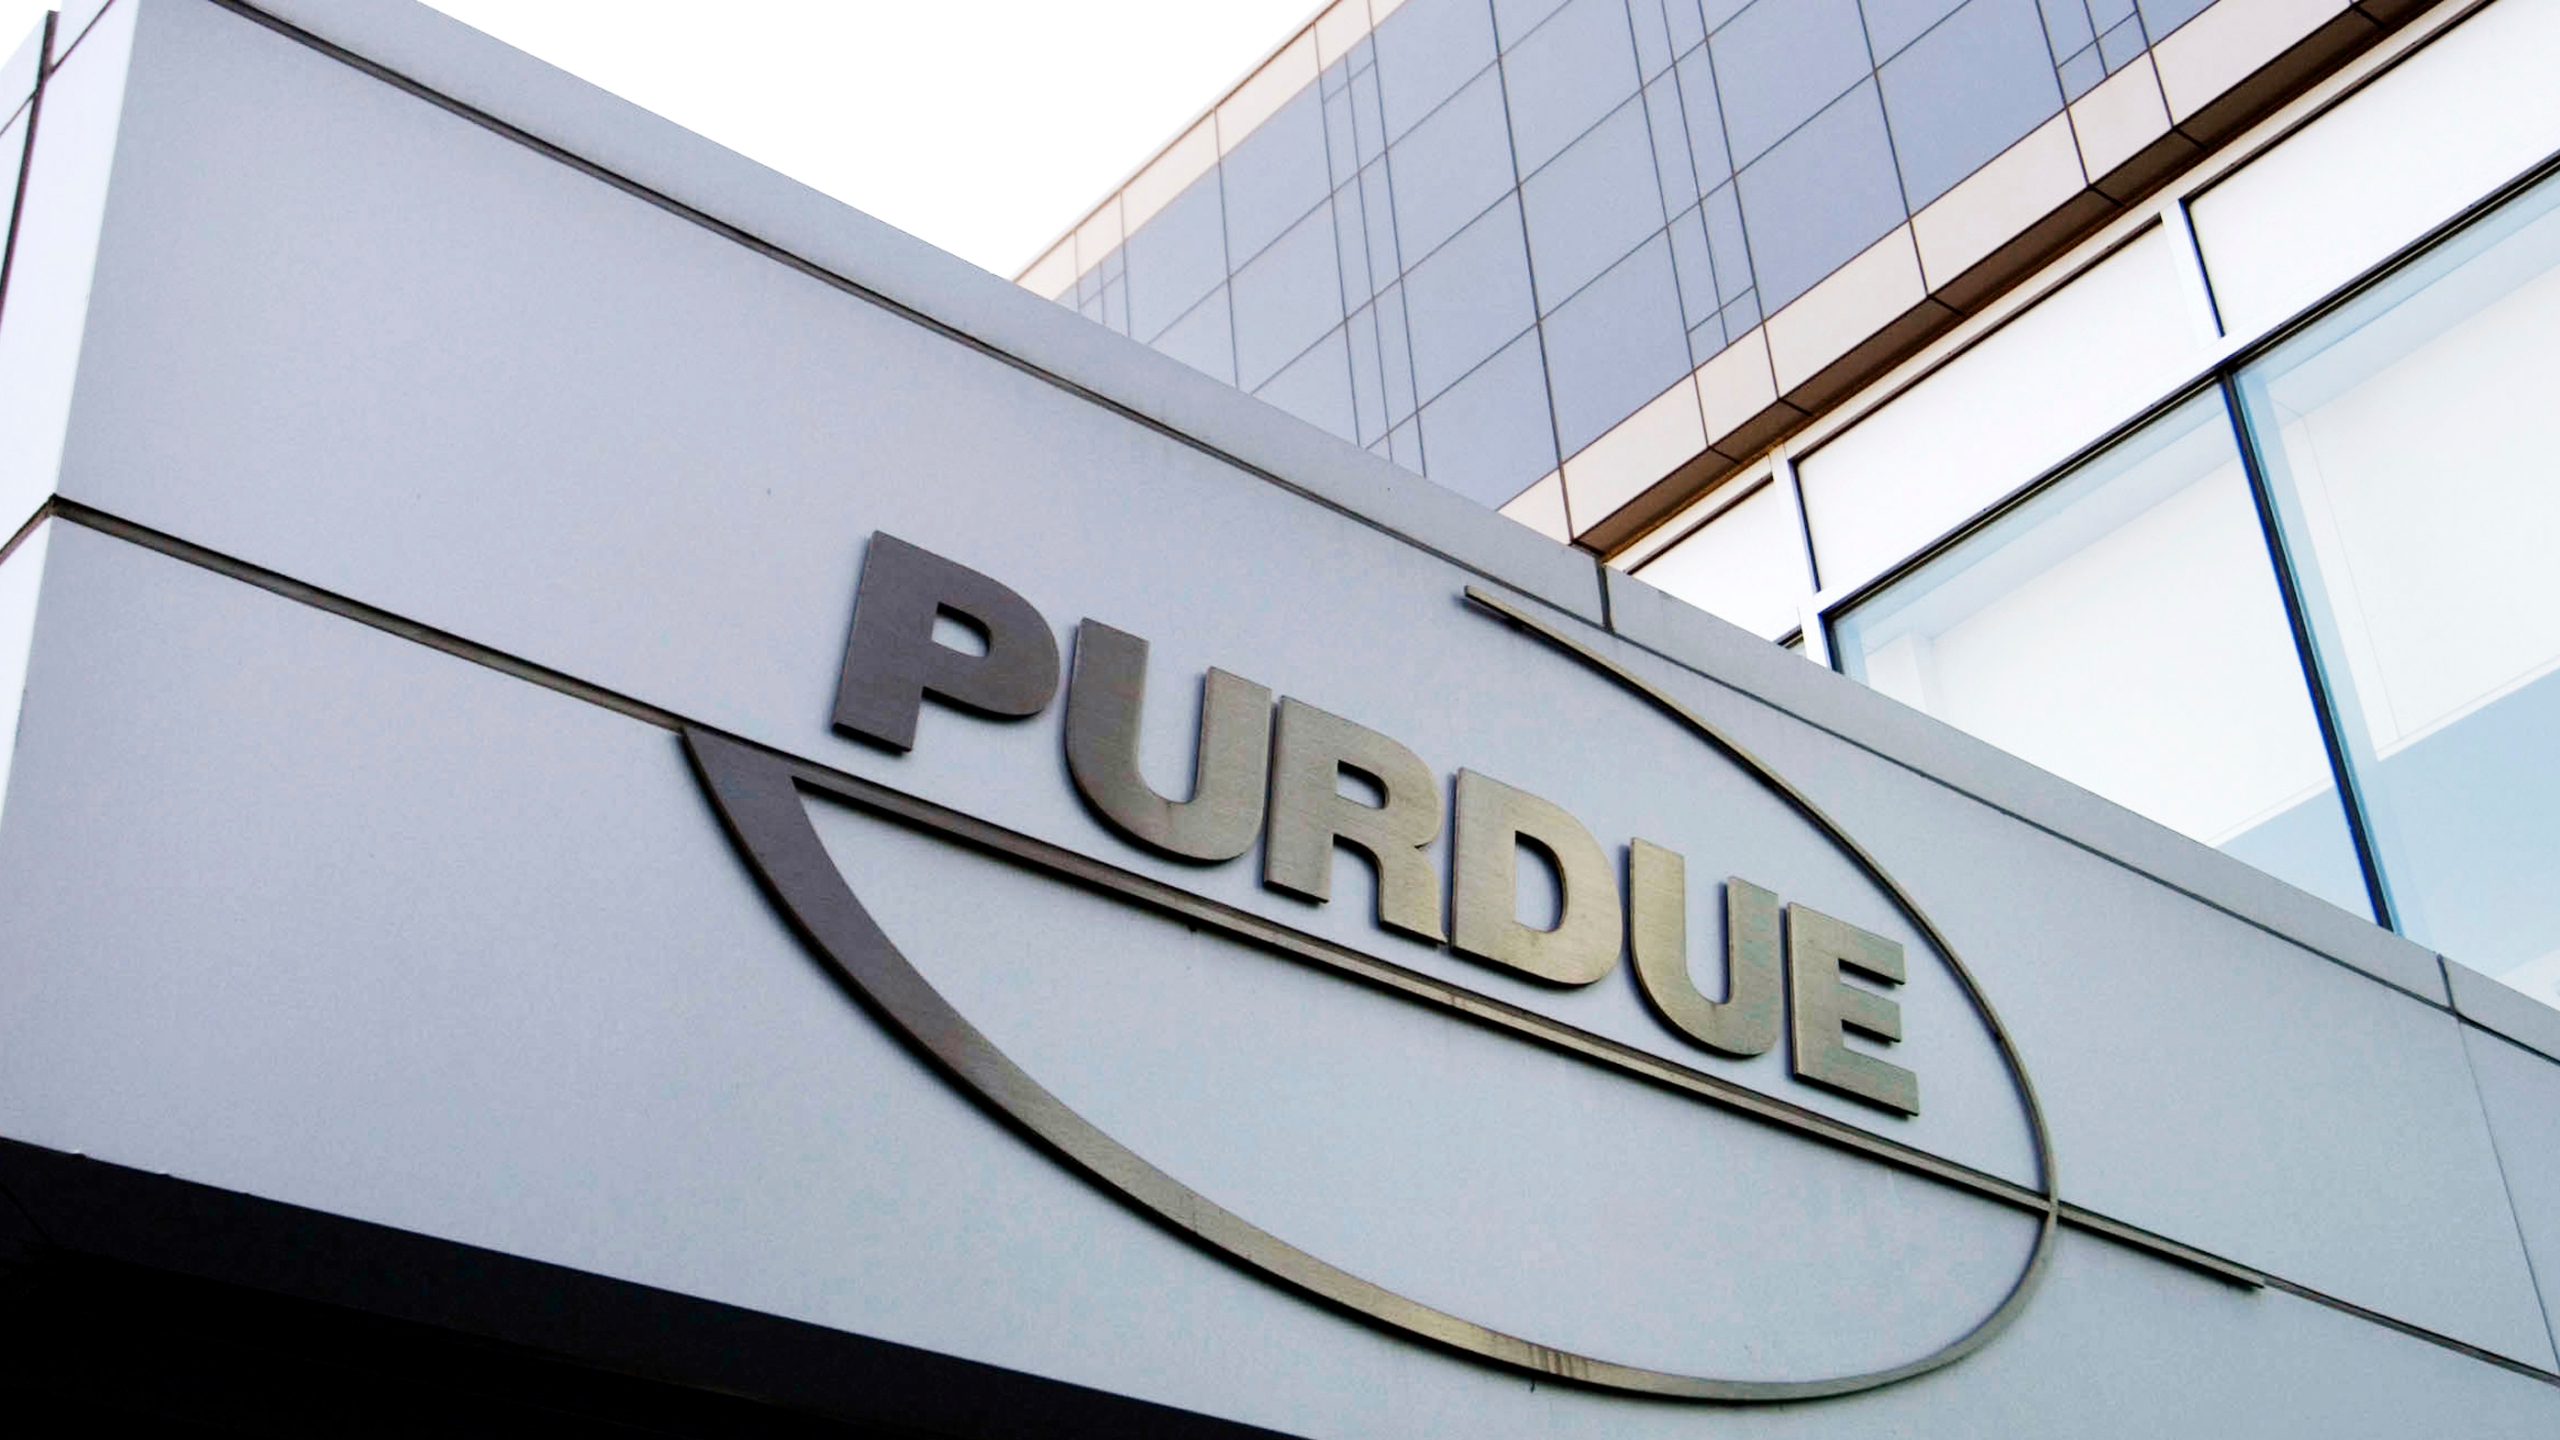 This Tuesday, May 8, 2007, file photo shows the Purdue Pharma logo at its offices in Stamford, Conn. (Douglas Healey/AP)